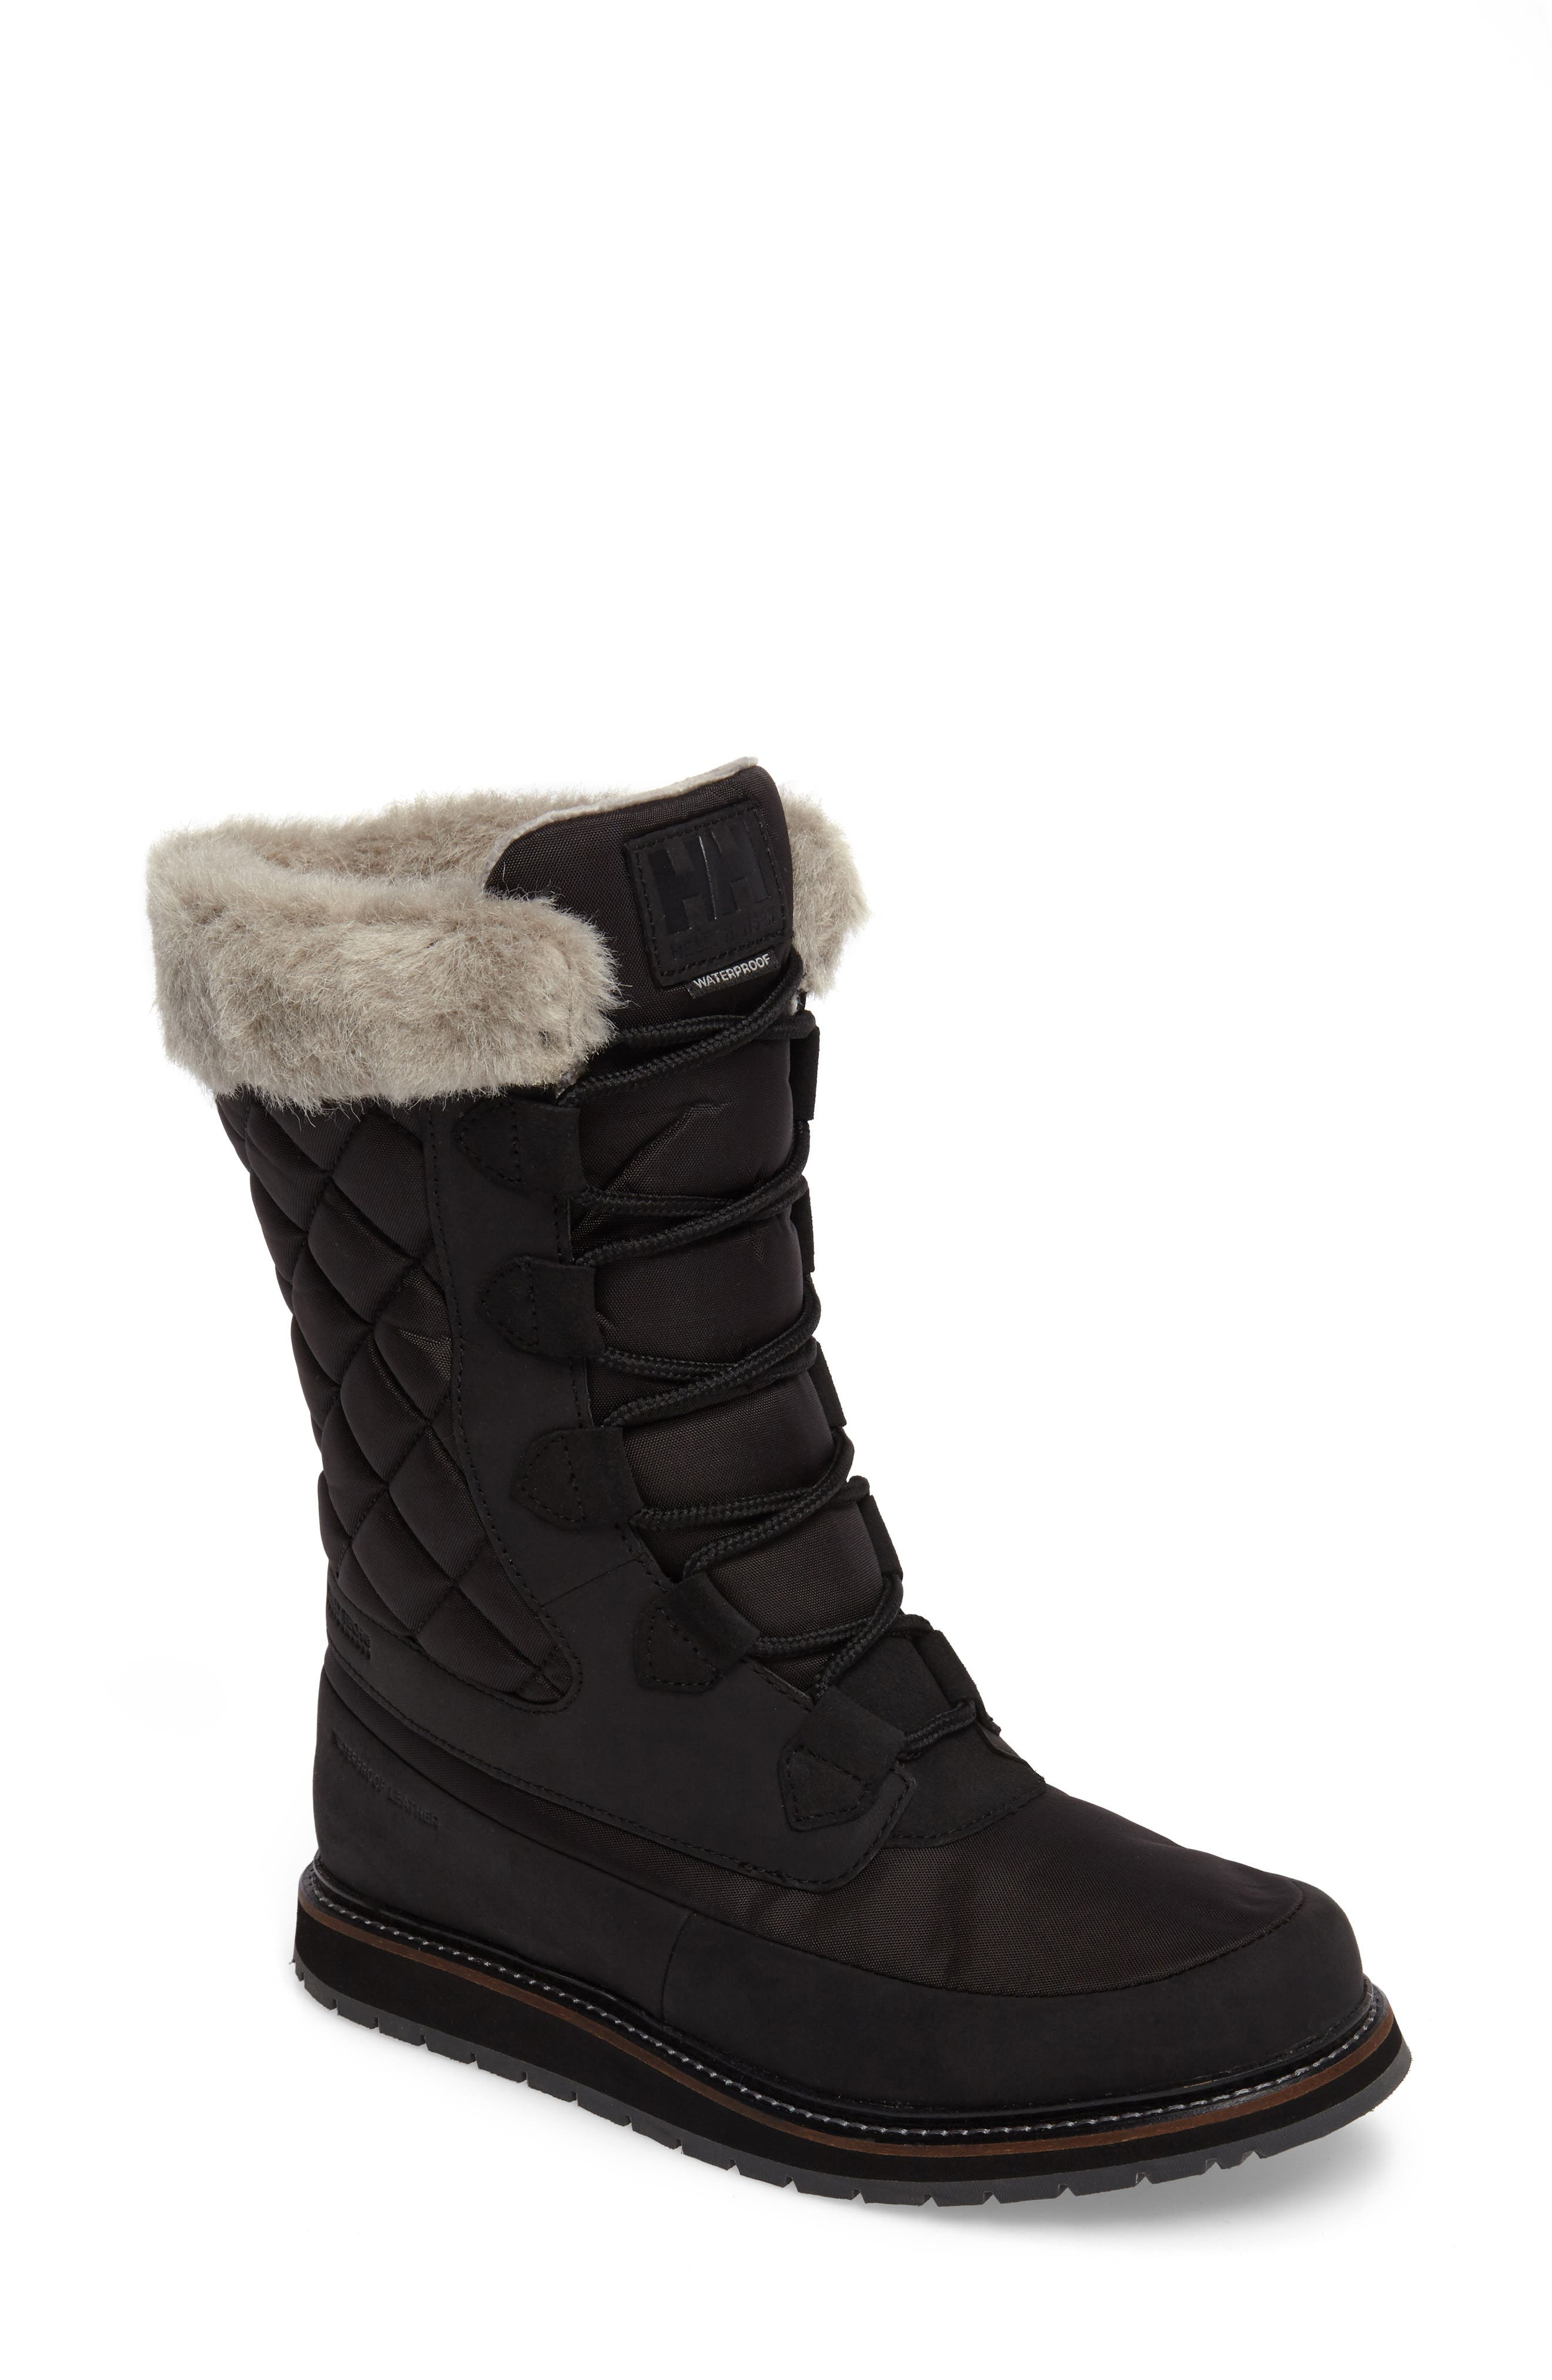 Arosa Waterproof Boot with Faux Fur Trim,                             Main thumbnail 1, color,                             001